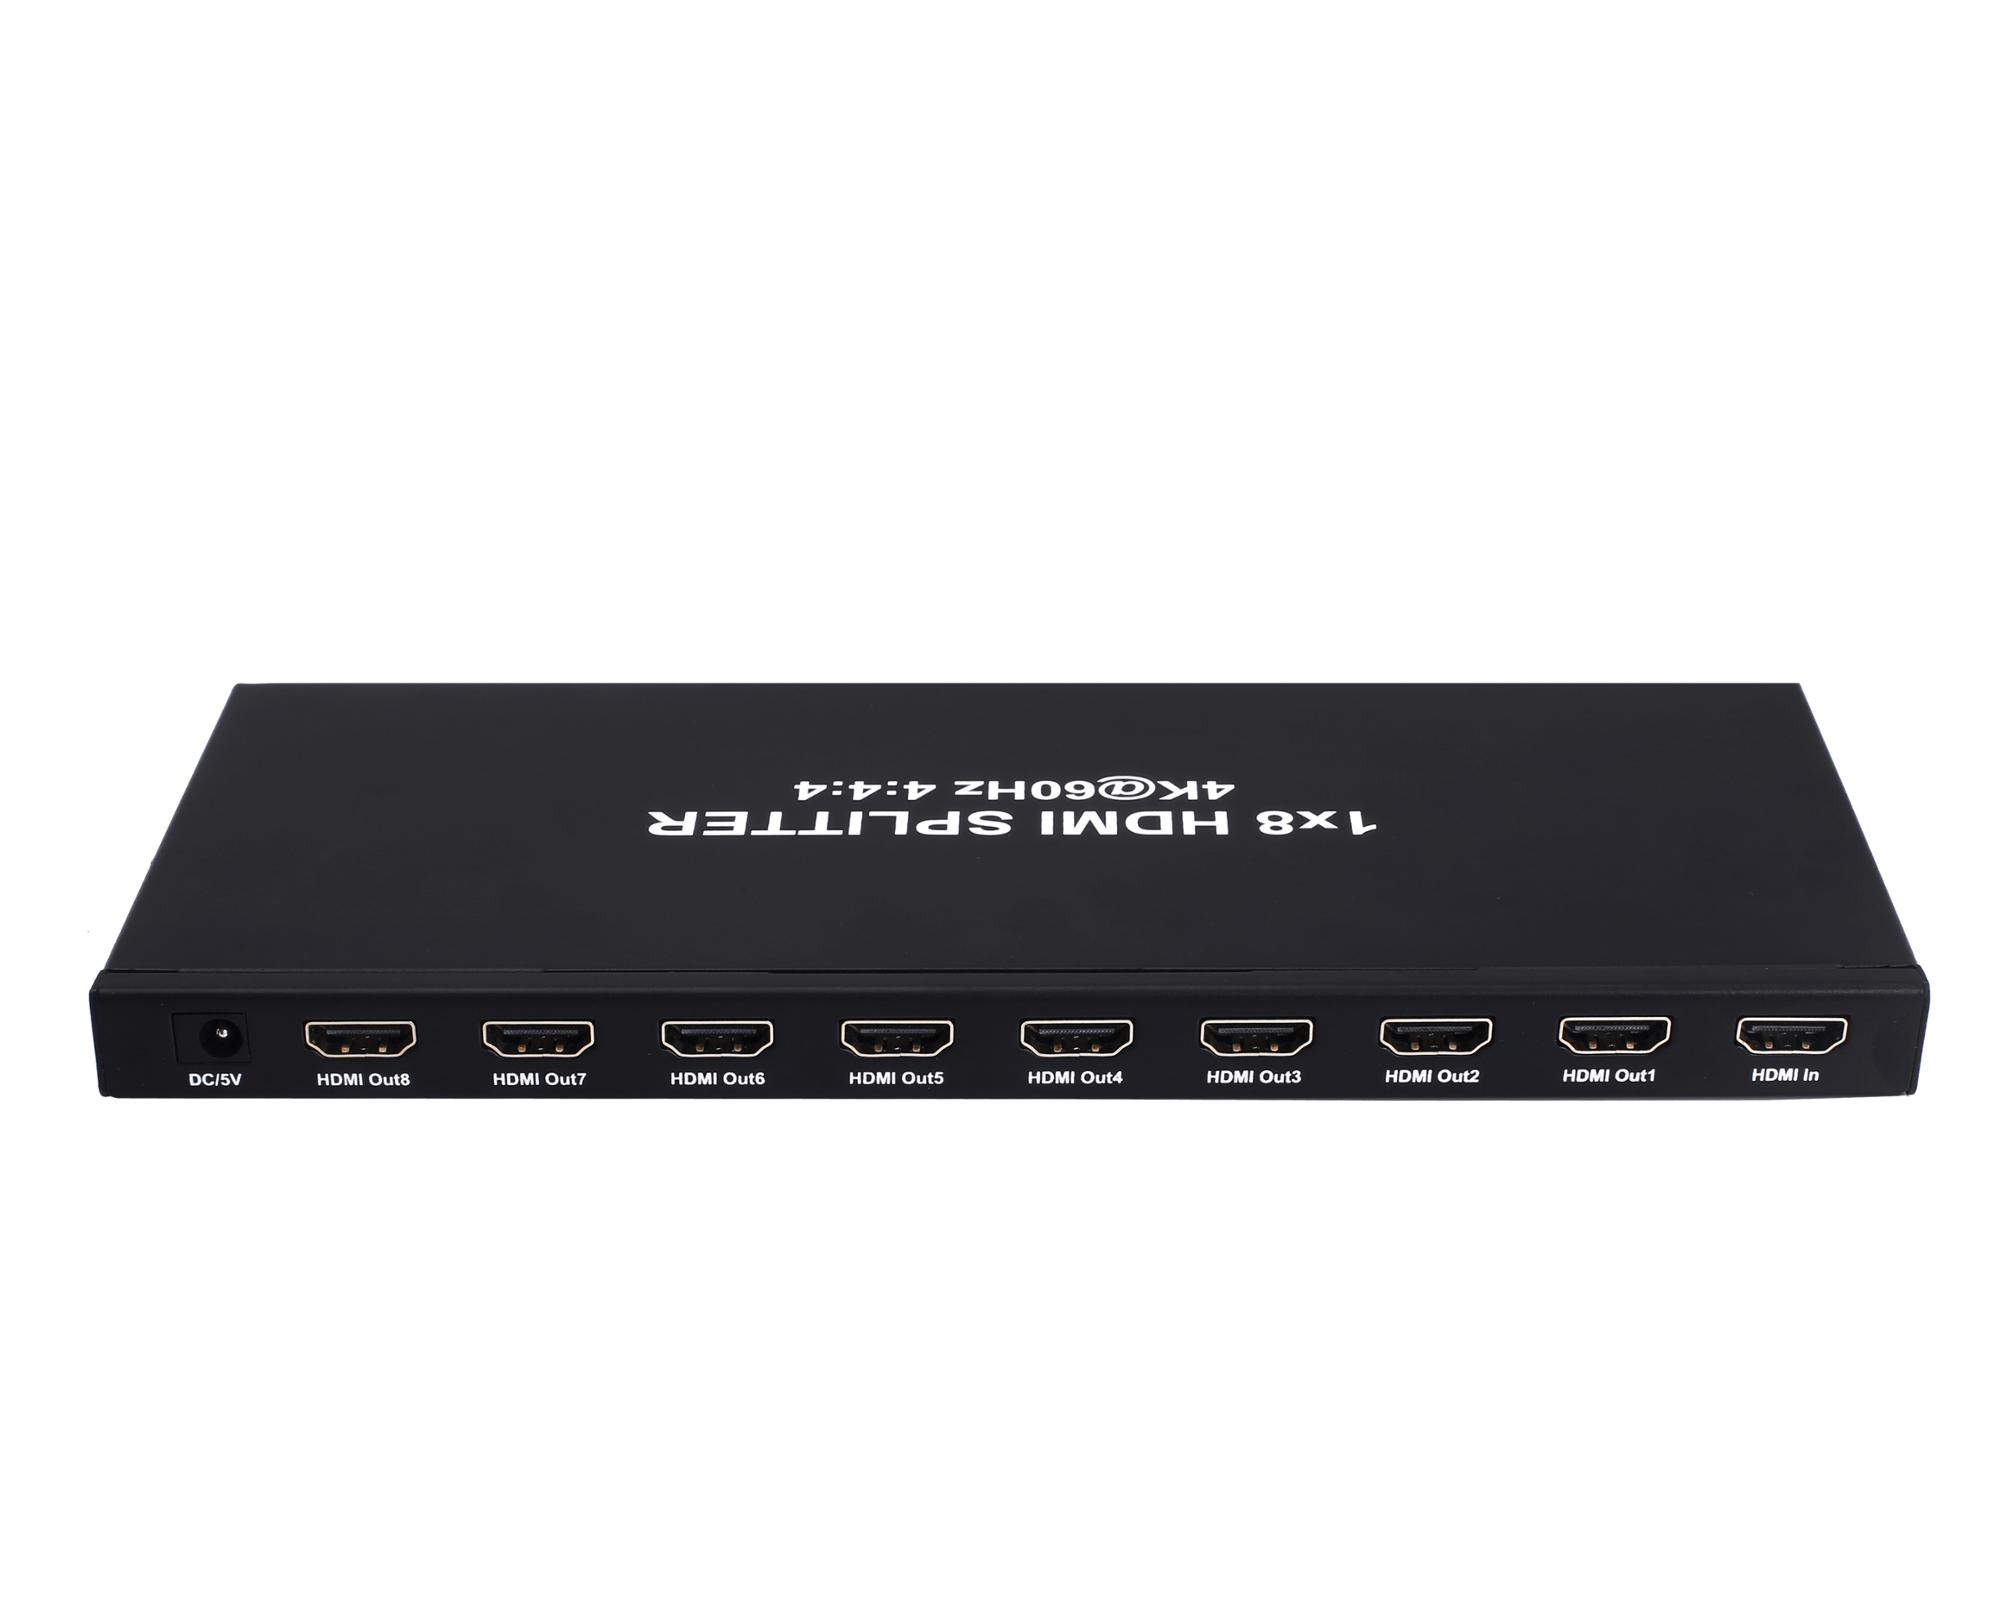 8 port HDMI 4k/60hz YUV444 AV Audio Video Splitter support 18G HDR10 HDCP 2.2